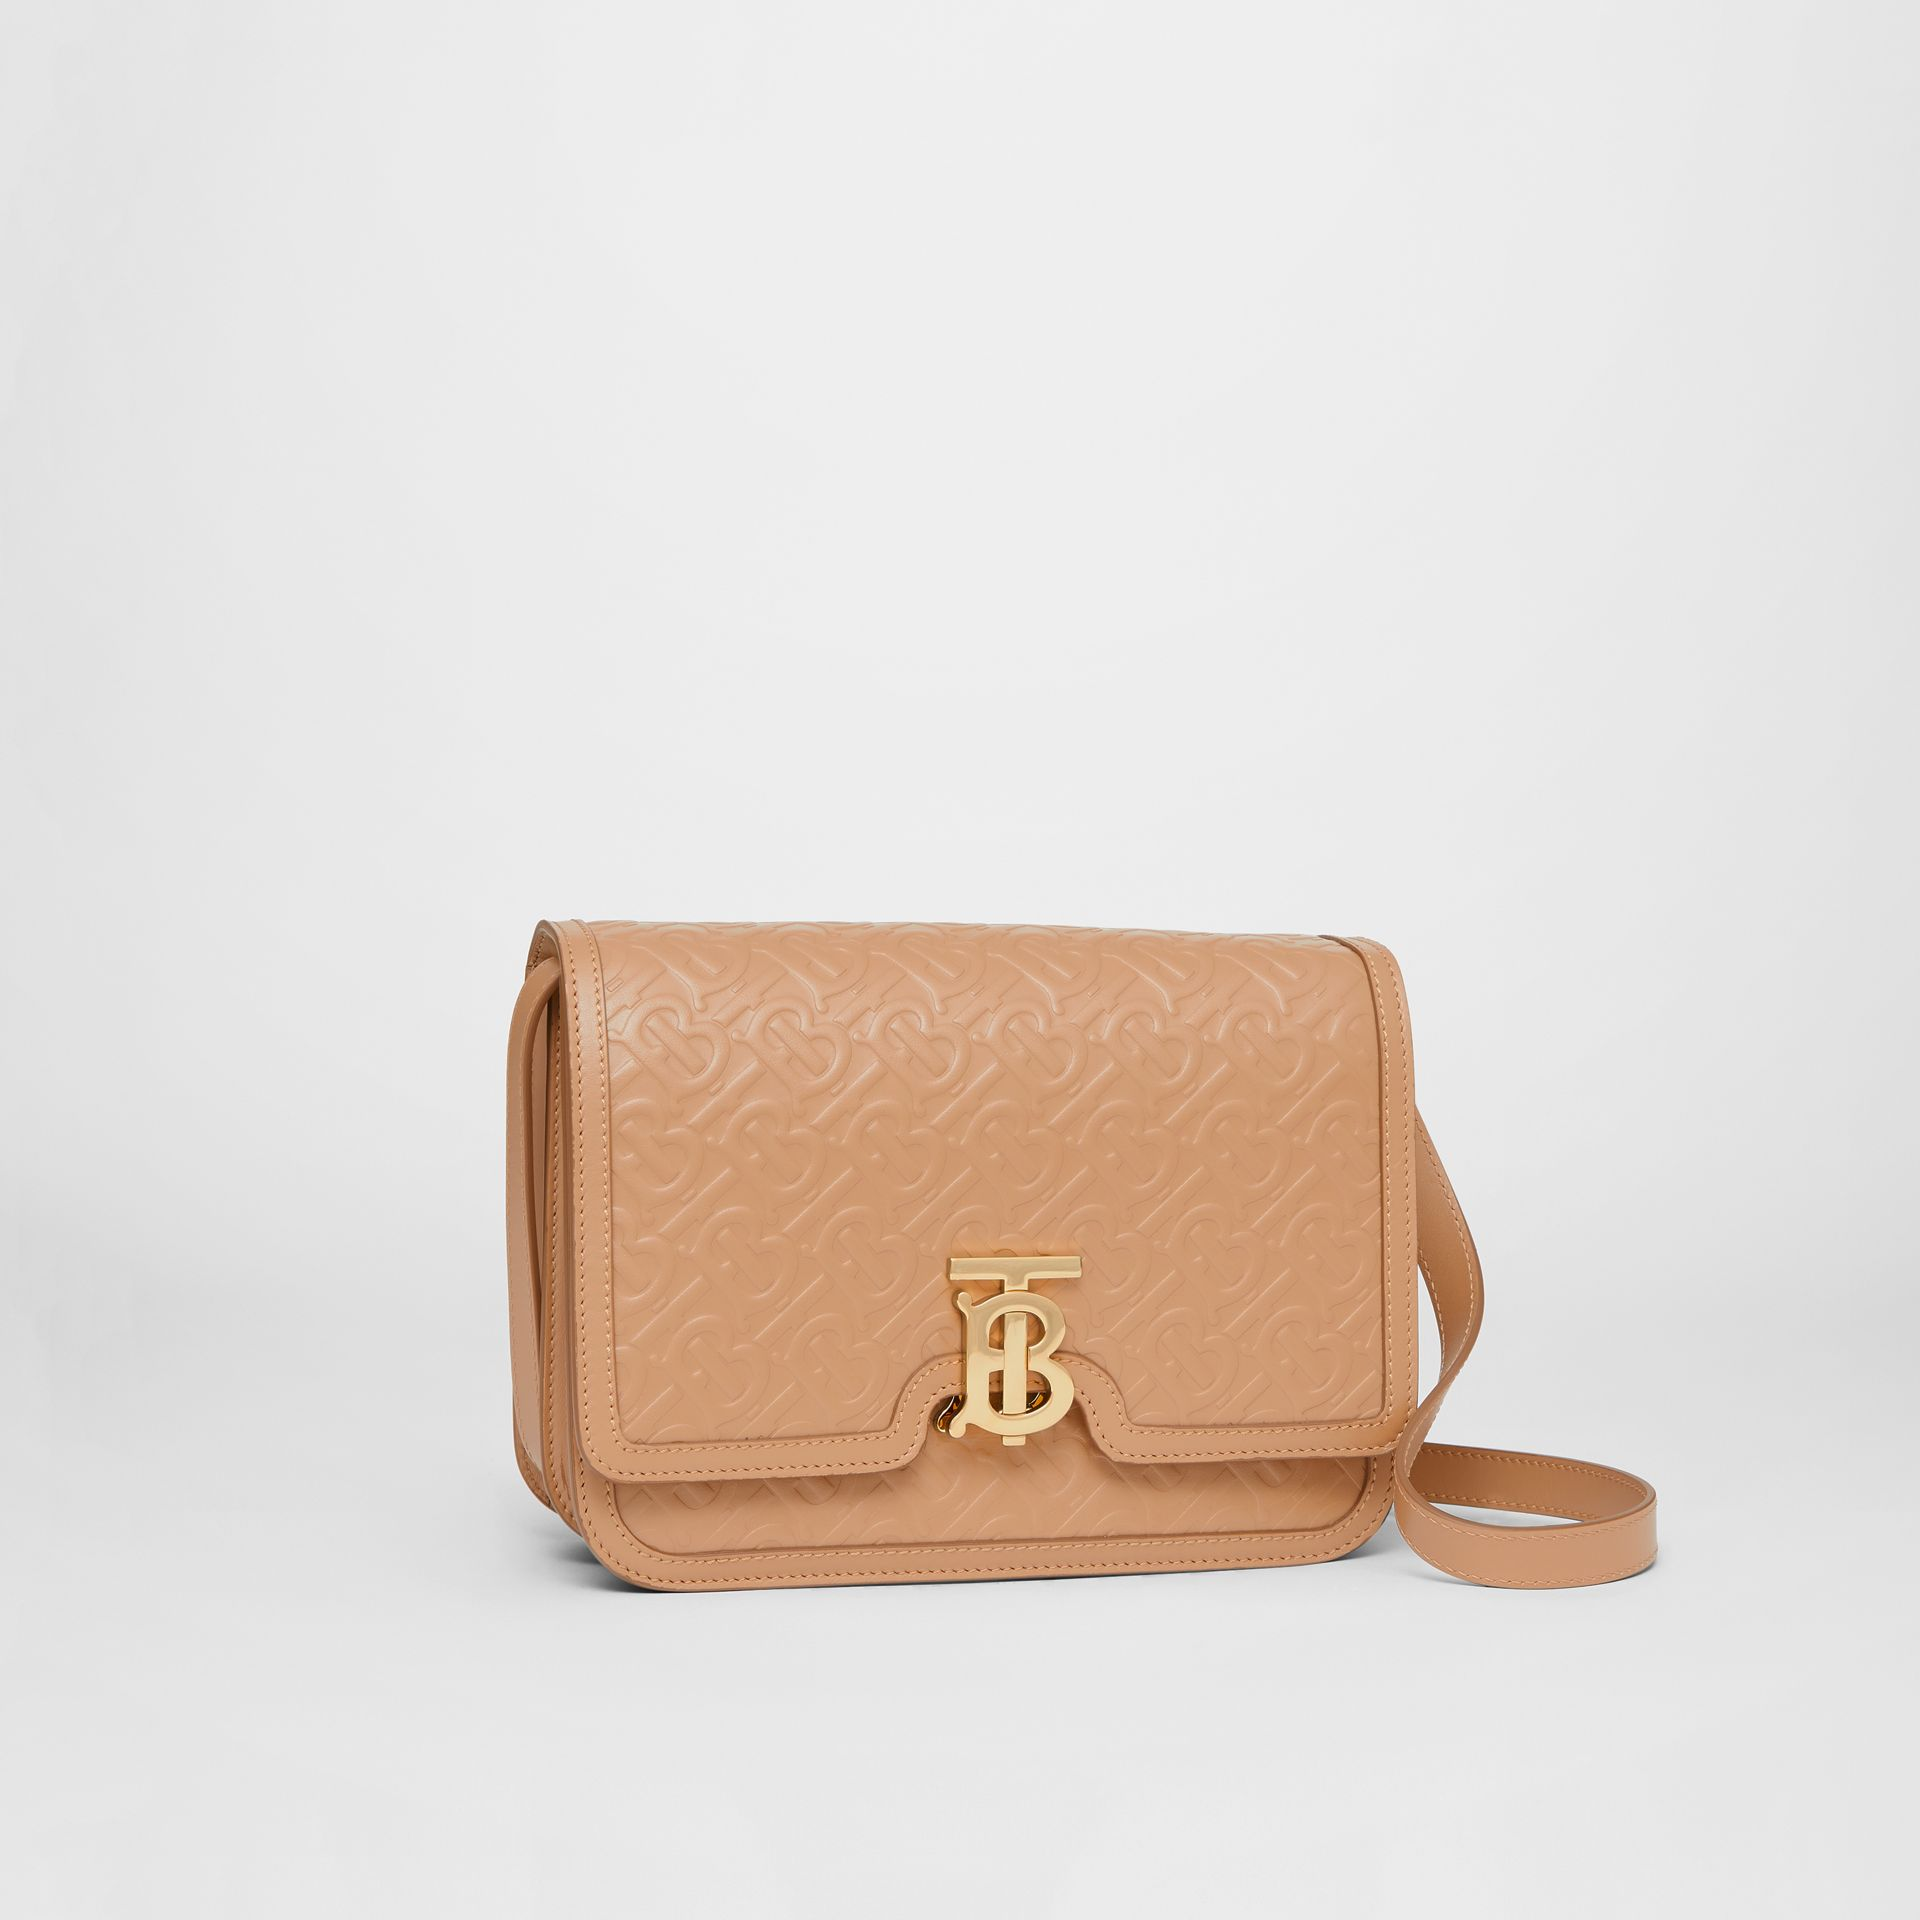 Medium Monogram Leather TB Bag in Light Camel - Women | Burberry - gallery image 4